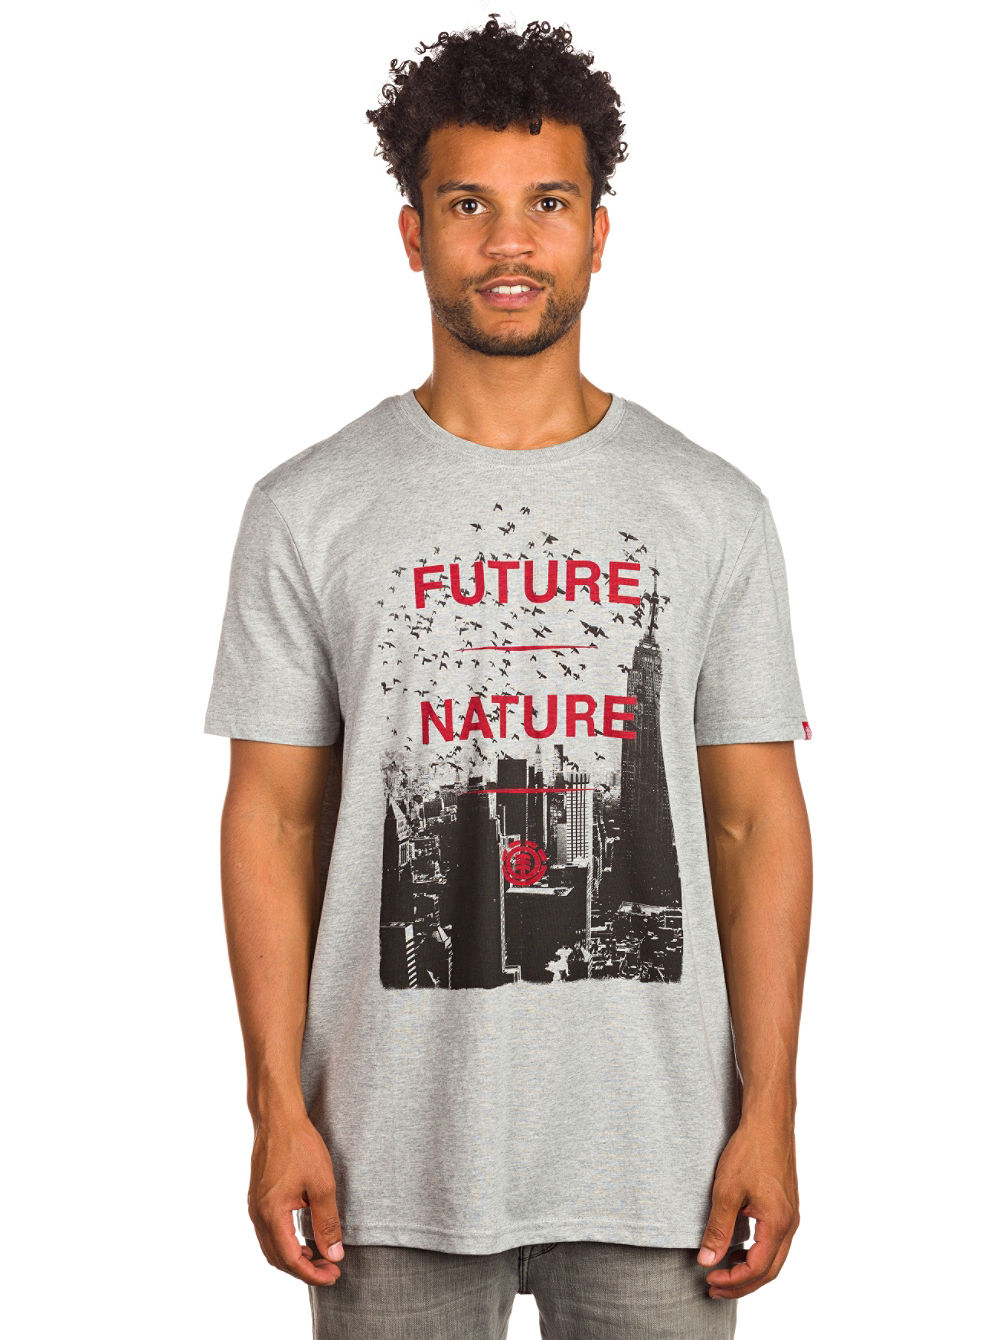 Buy Element Future Nature T-Shirt online at blue-tomato.com